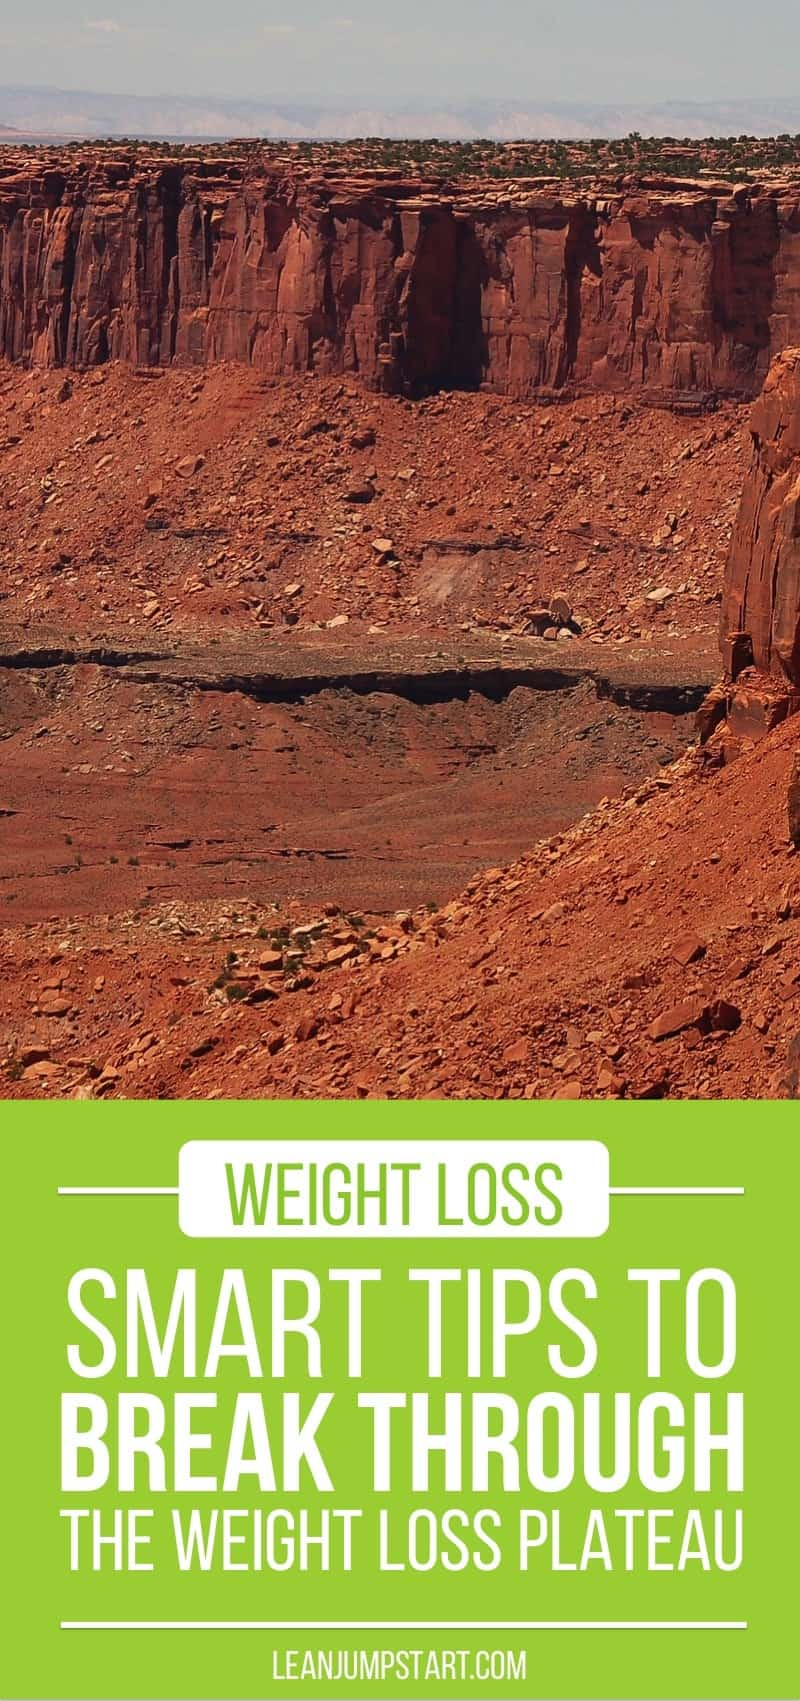 How to successfully loose weight through dieting